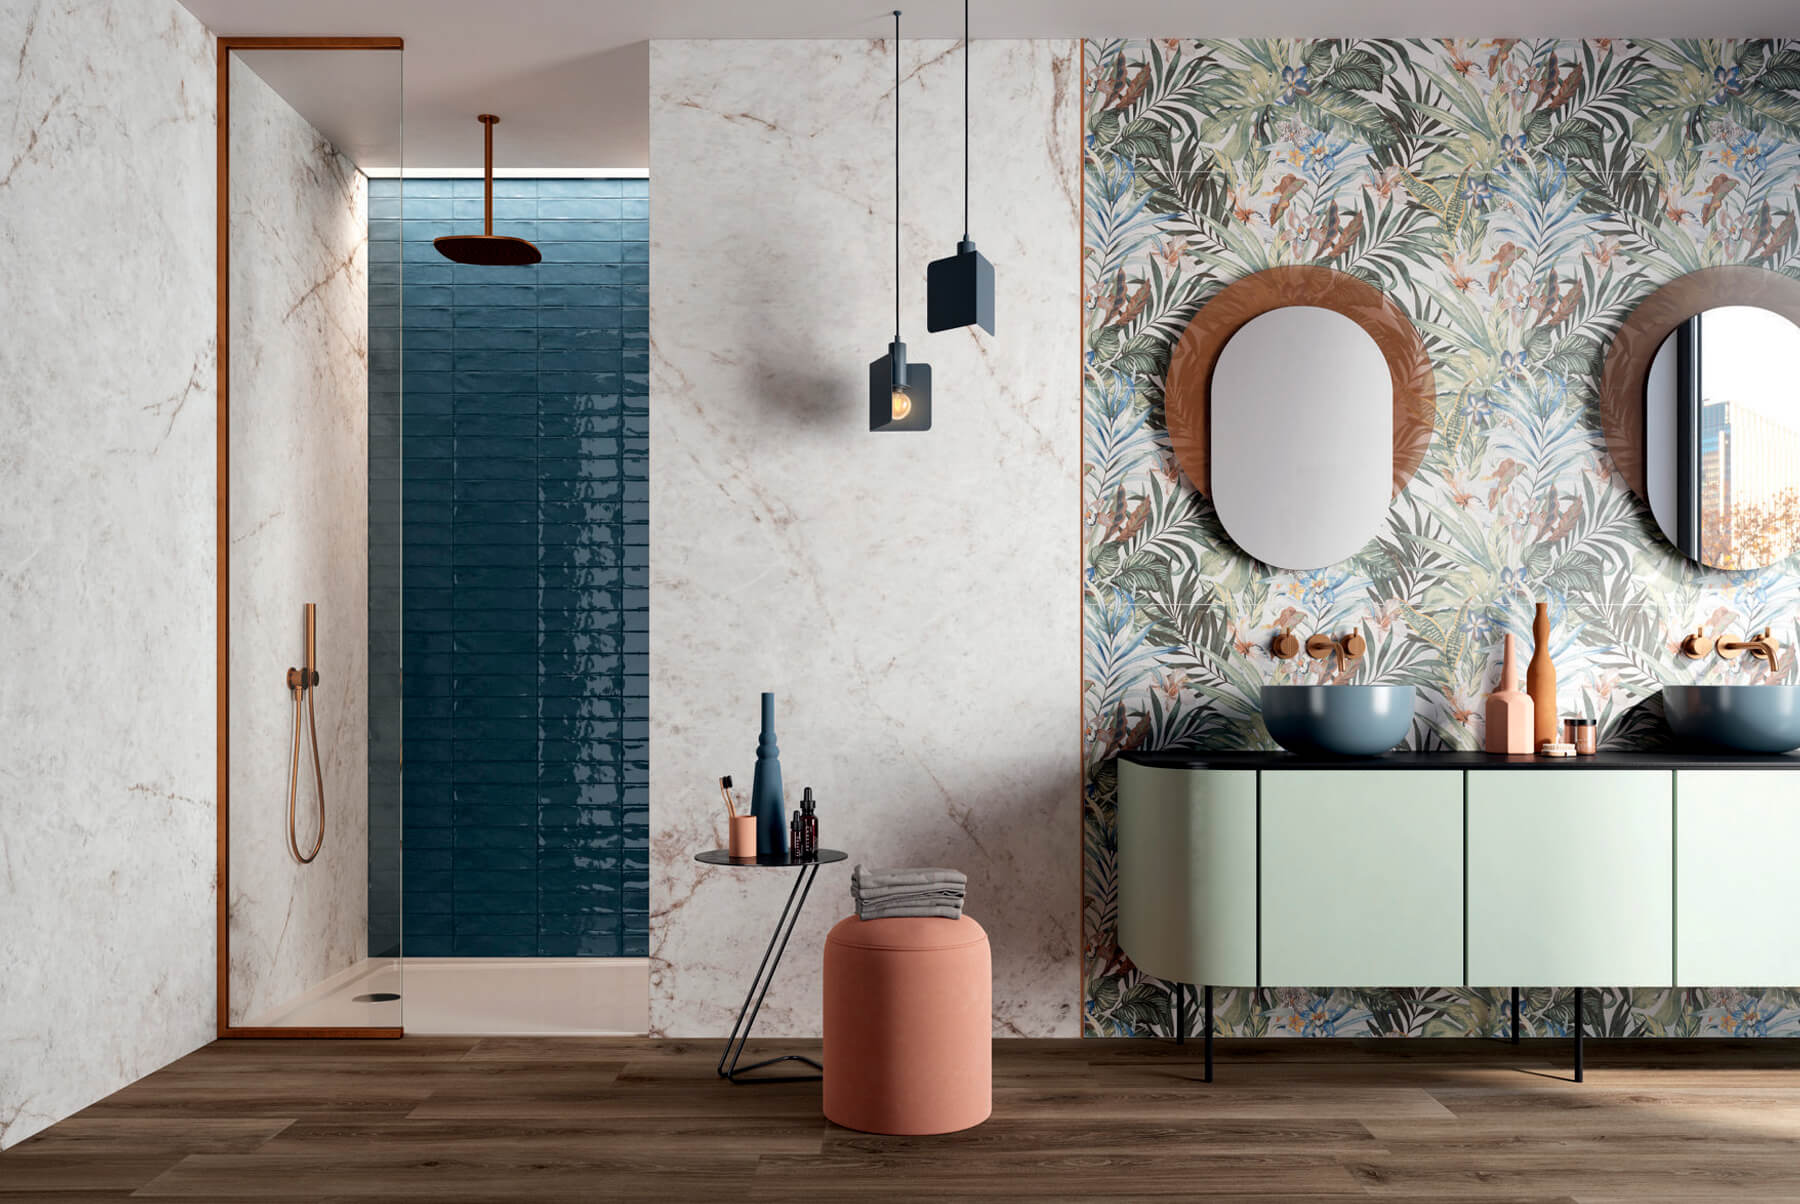 TILES-WIDE-&-STYLE-MINI-INSET-7-1800x1204